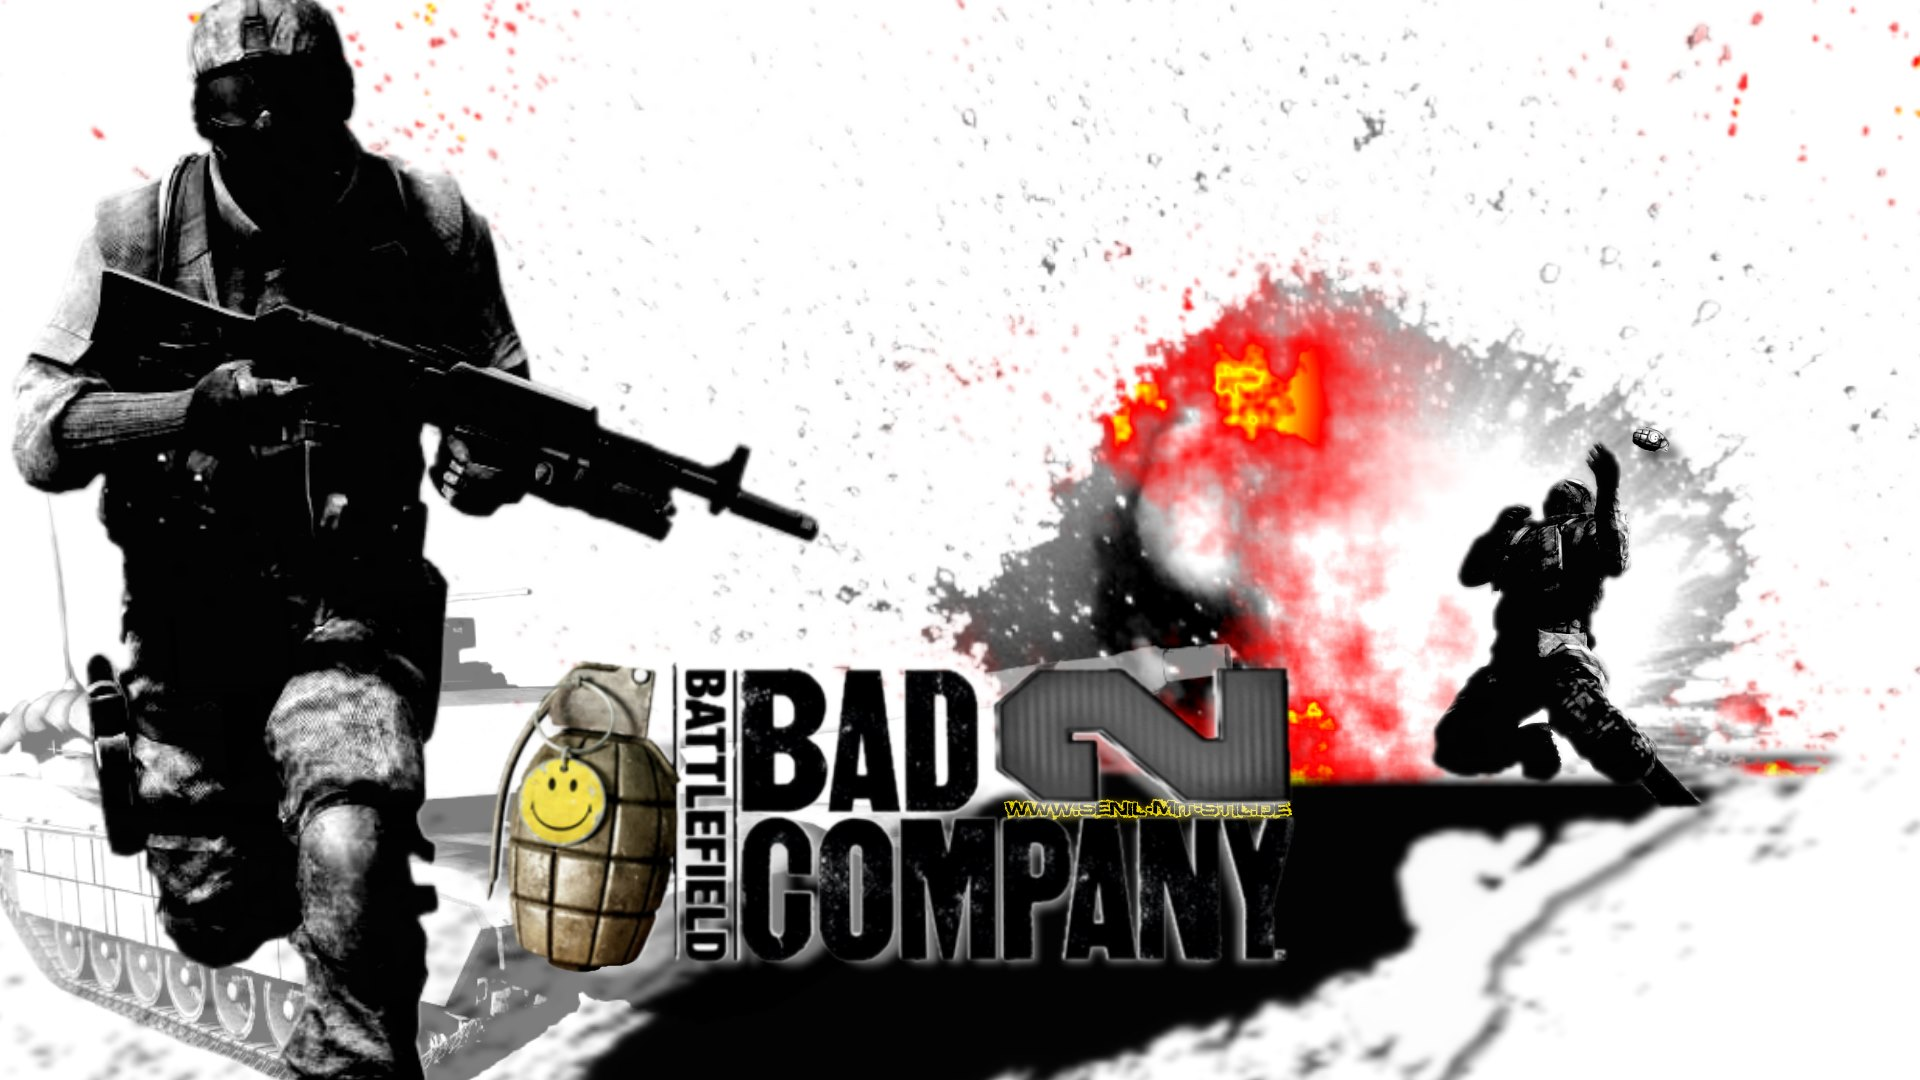 Battlefield bad company wallpaper - photo#27